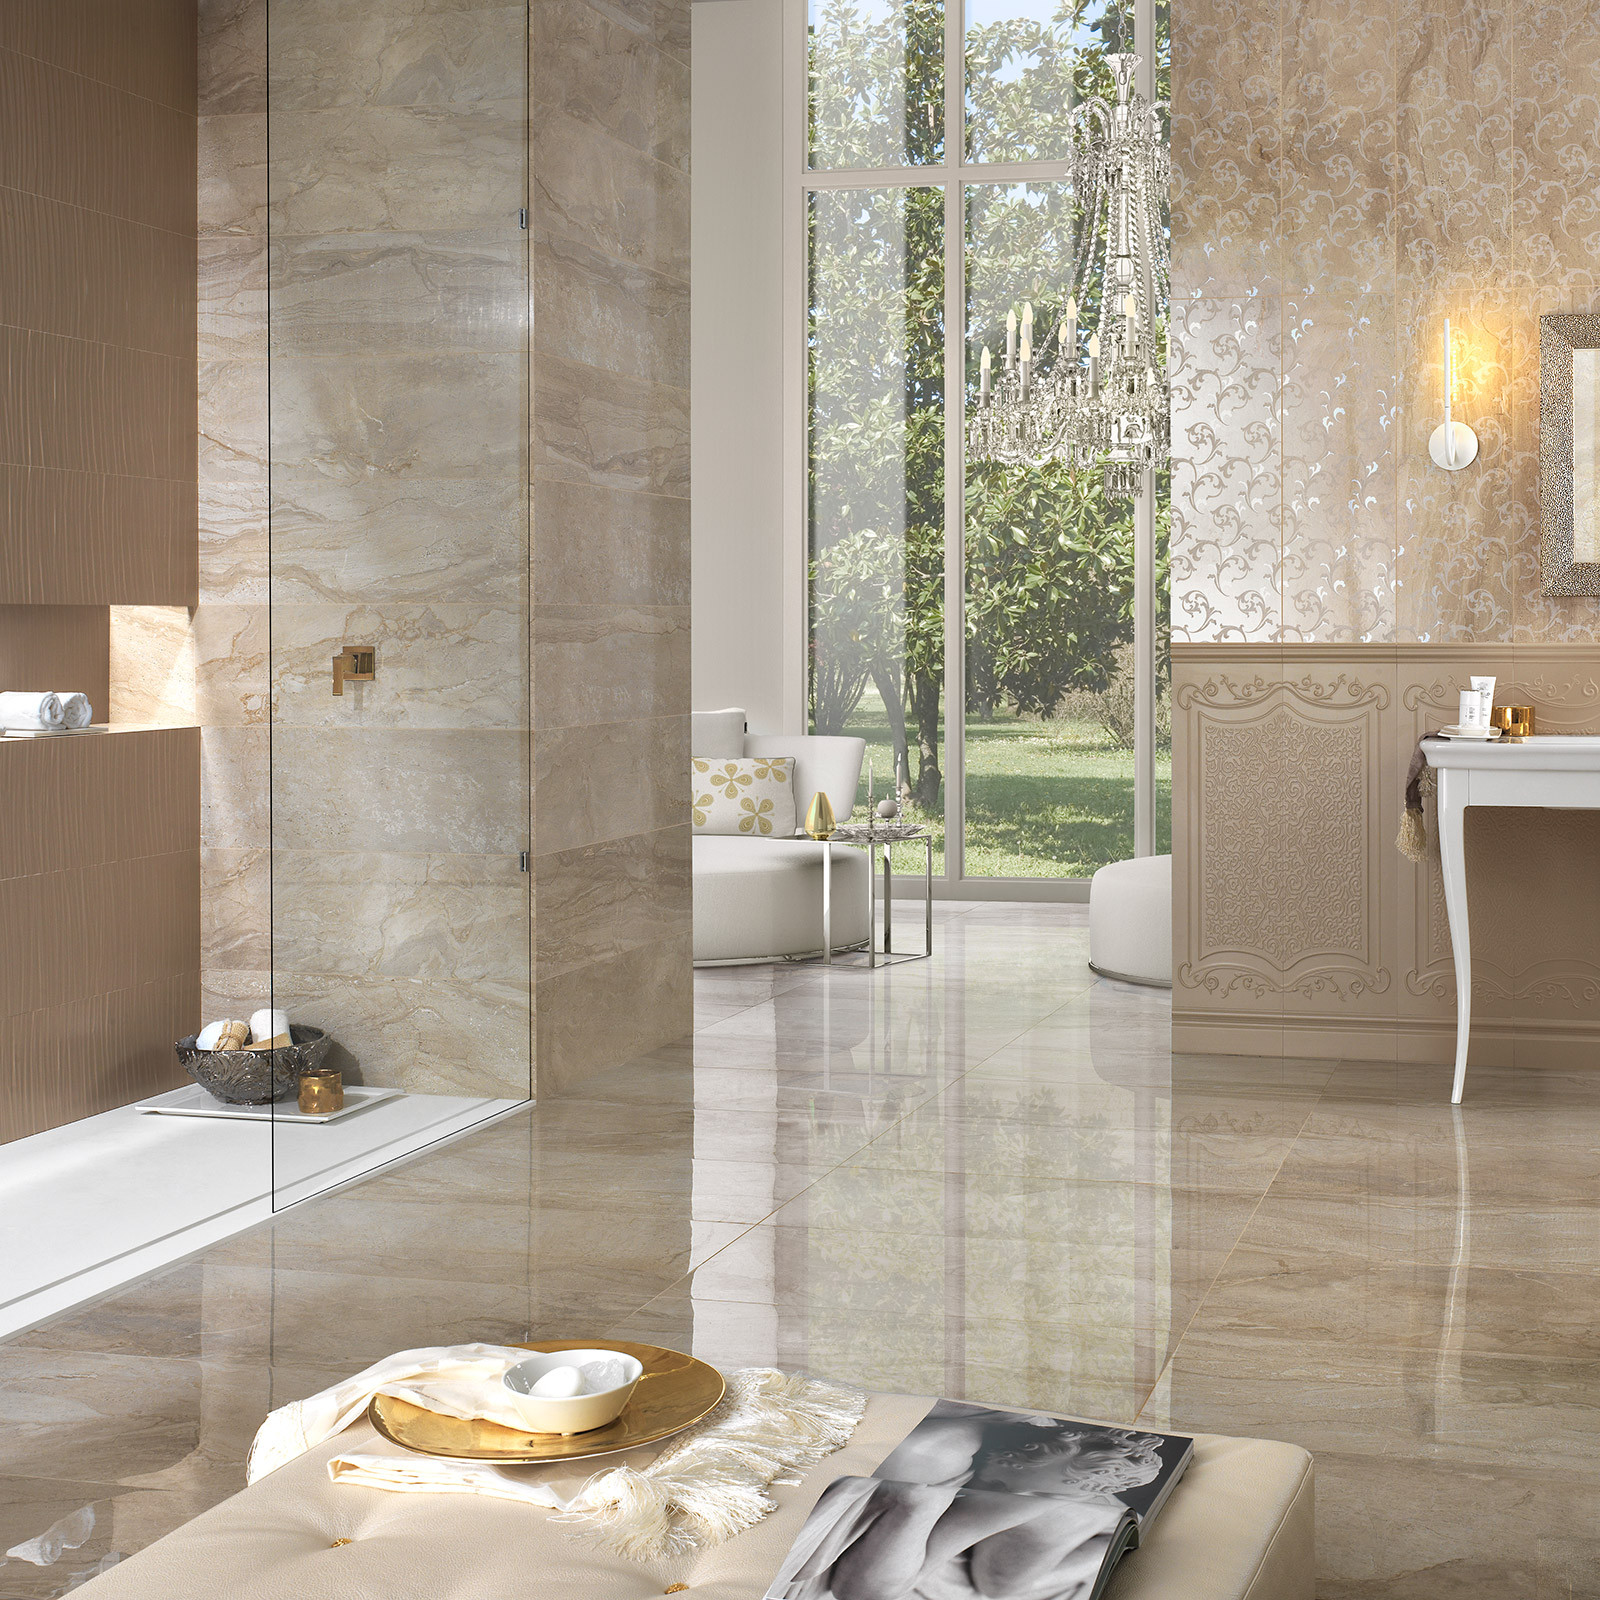 Wall Tile For Bathrooms: Marmi Daino Reale Rectified Wall Tile